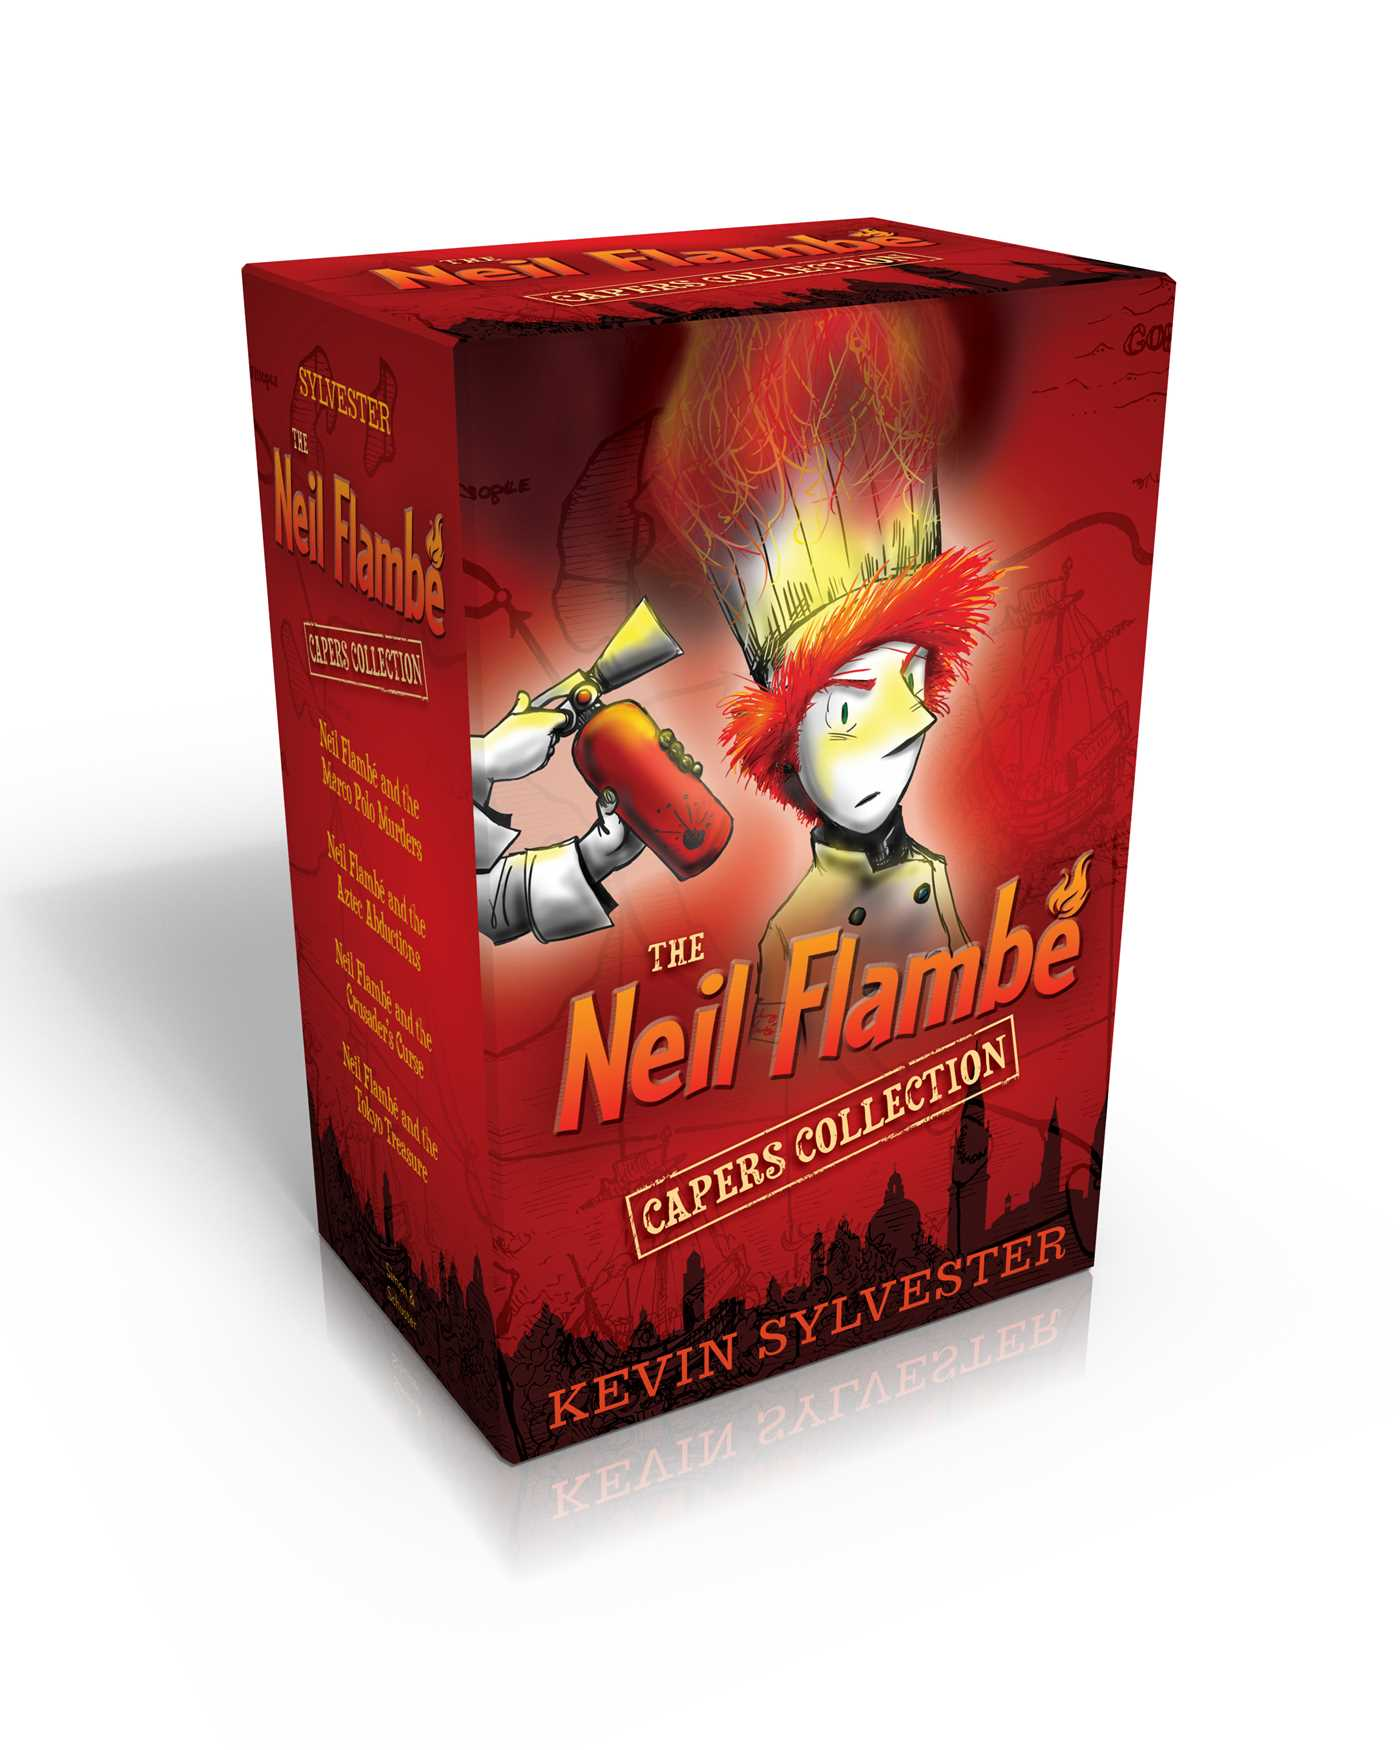 Neil flambe capers collection 9781481432382 hr